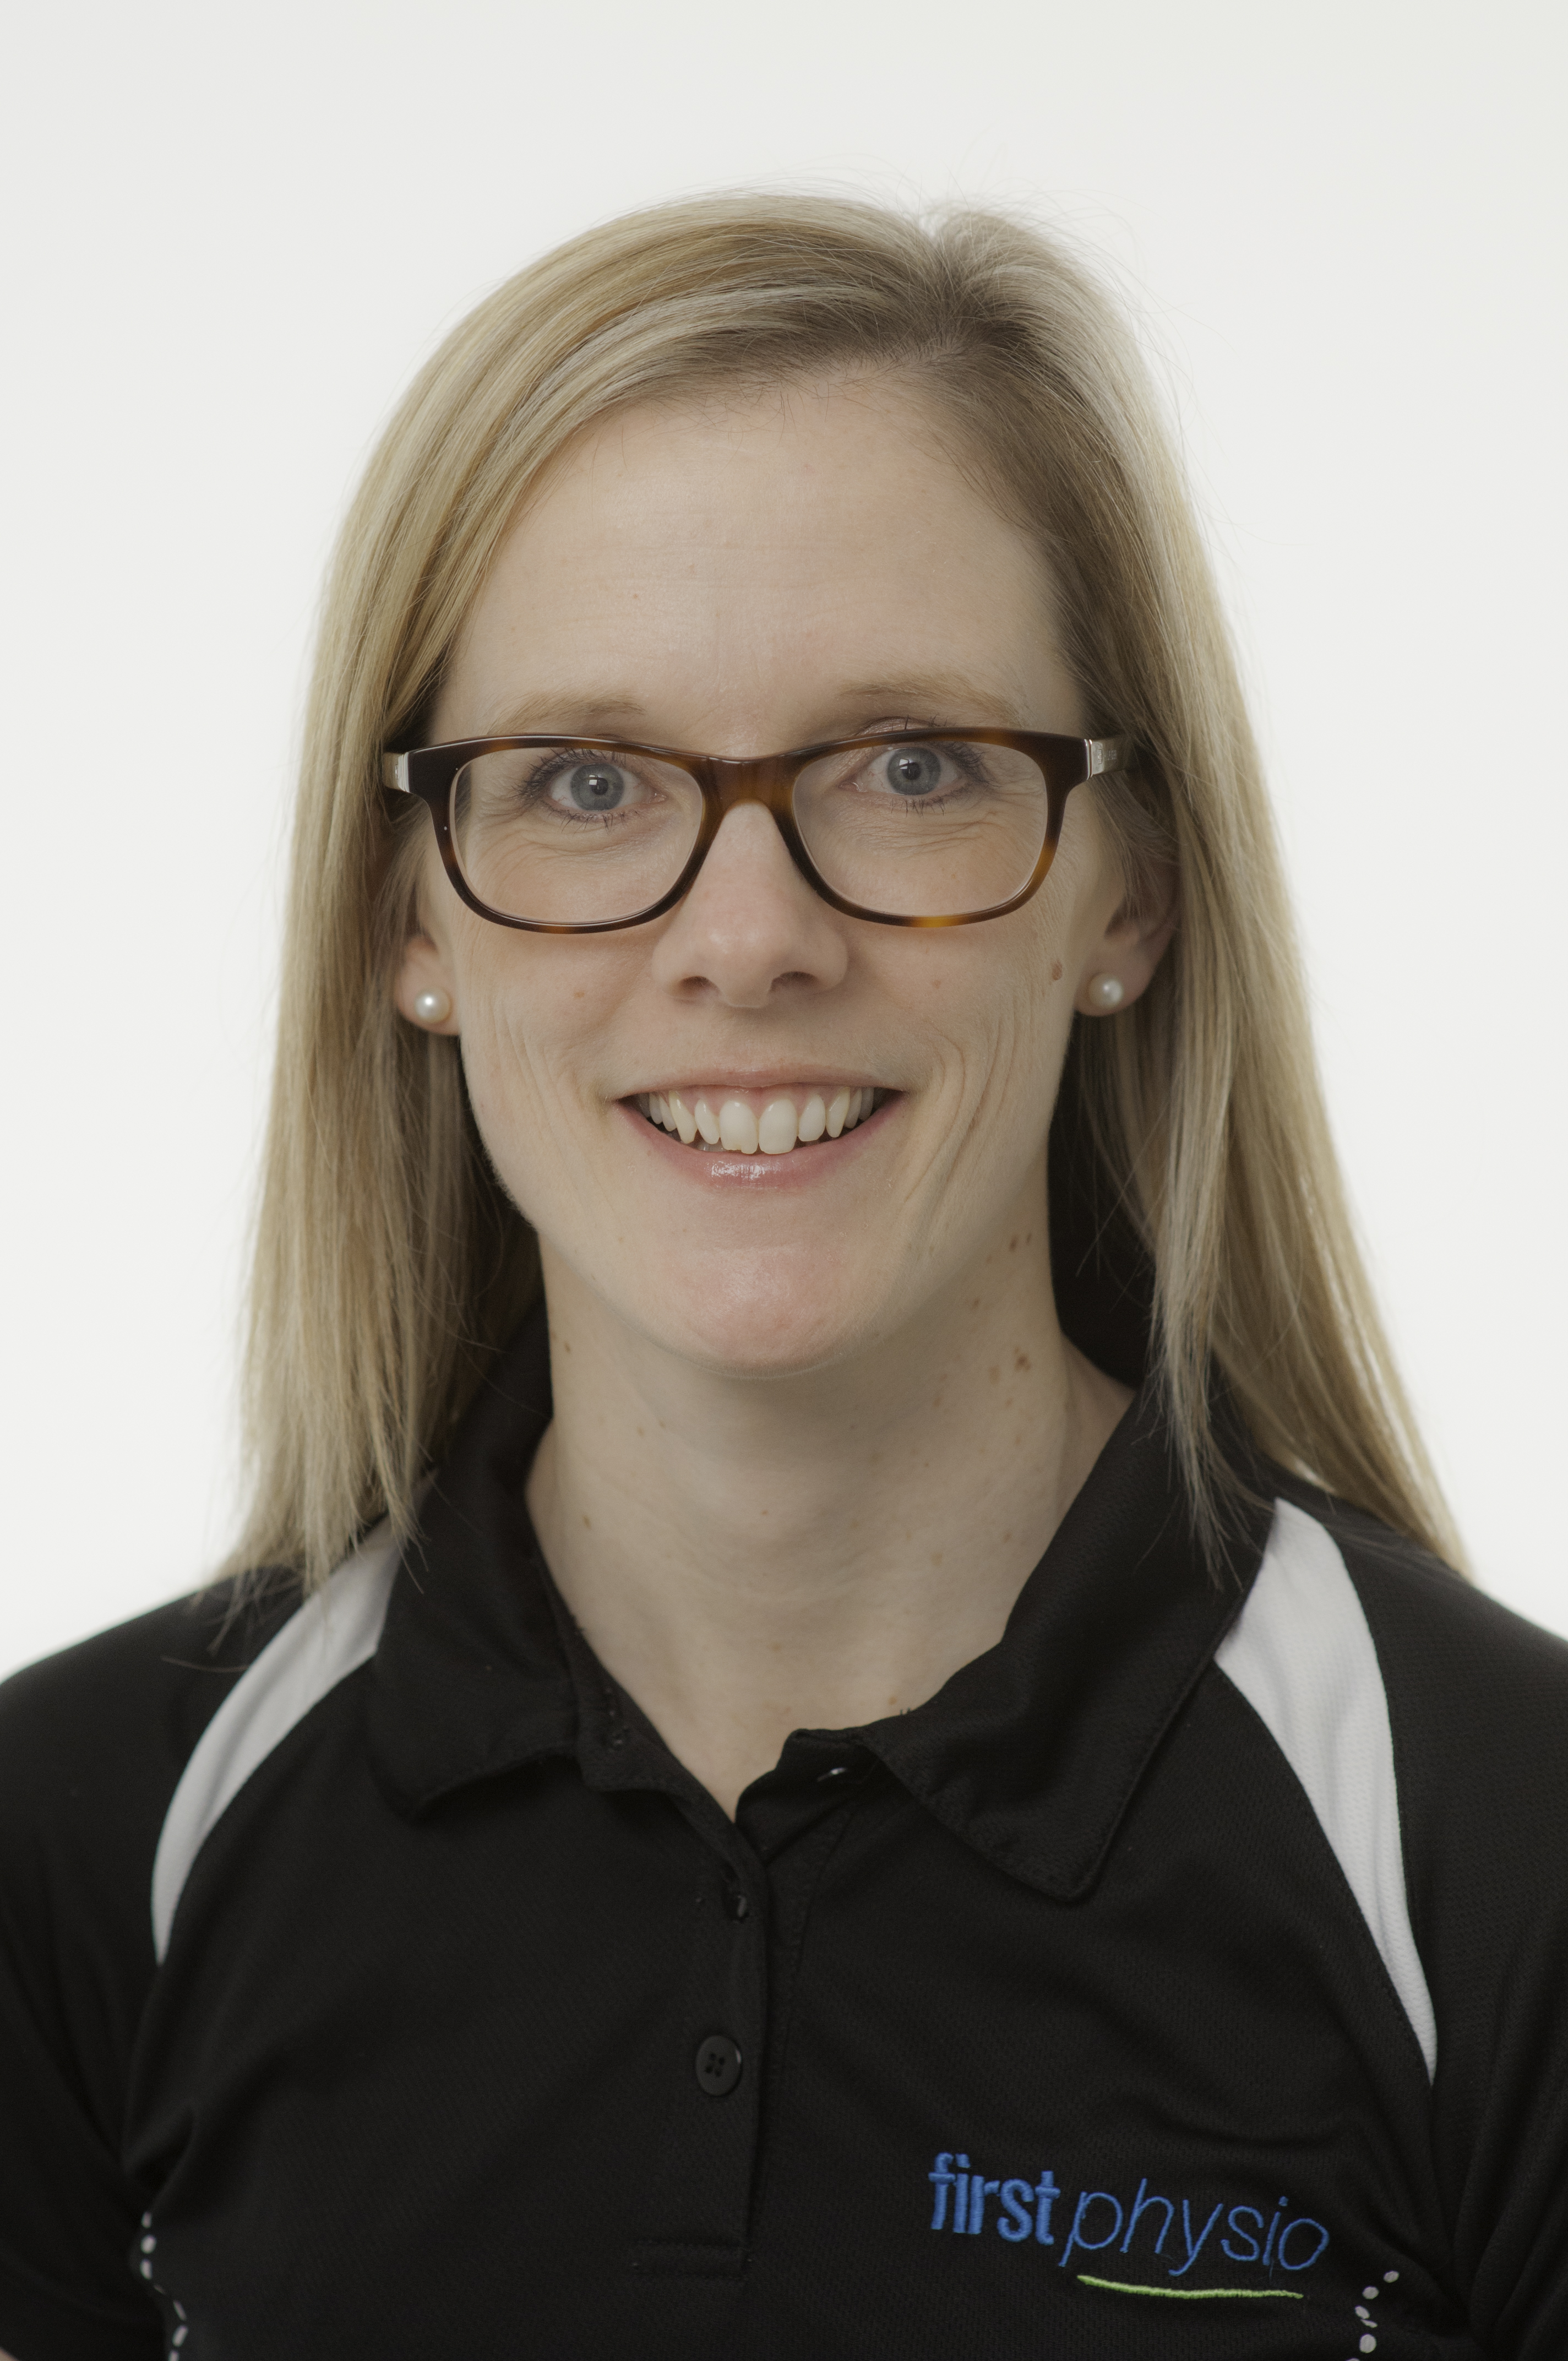 Jo Avery - Owner / Physiotherapist